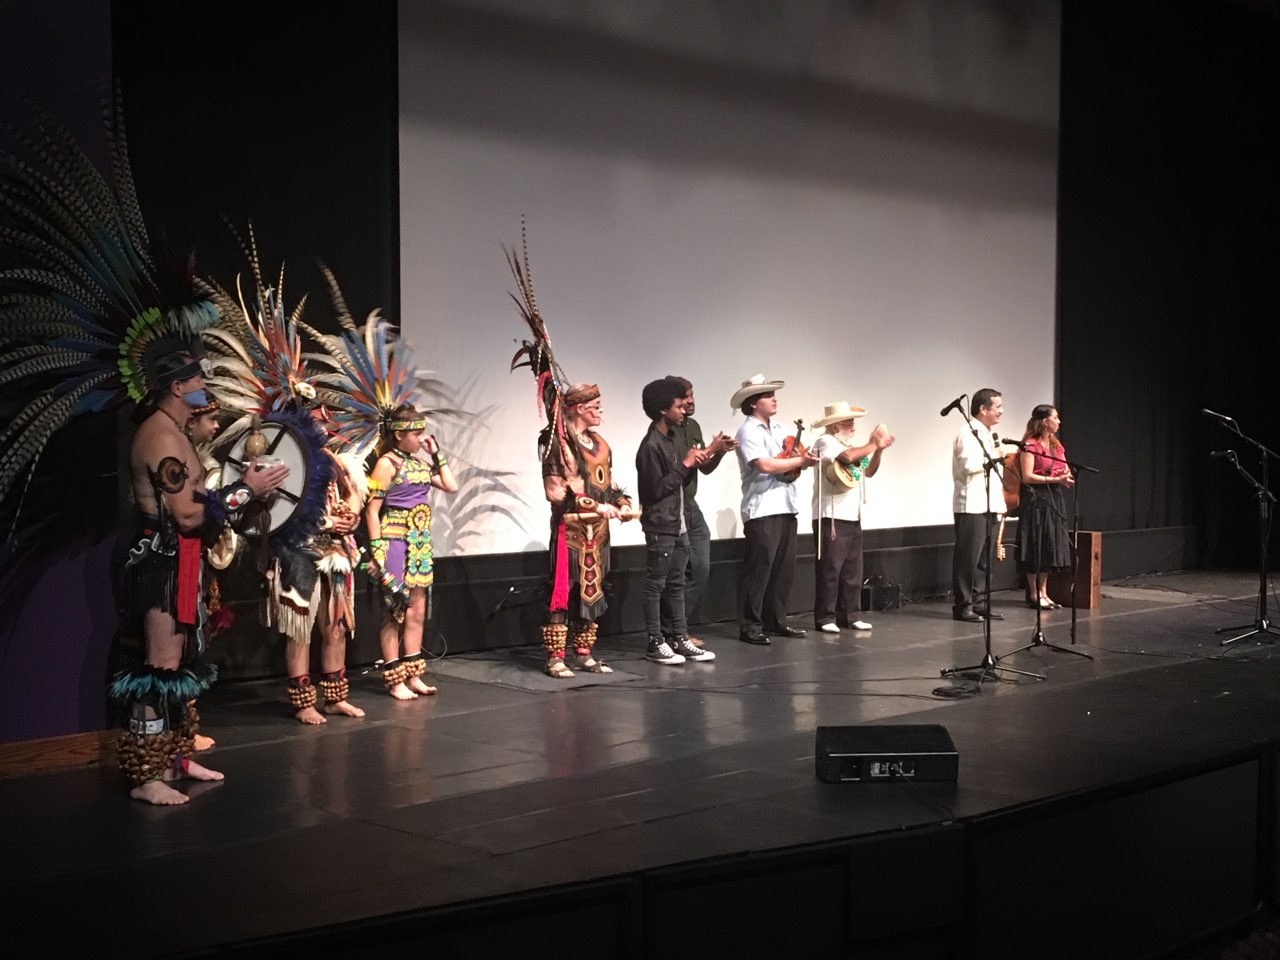 The concert includes Aztec dance, hip-hop, son huasteco, and hula, among other genres.